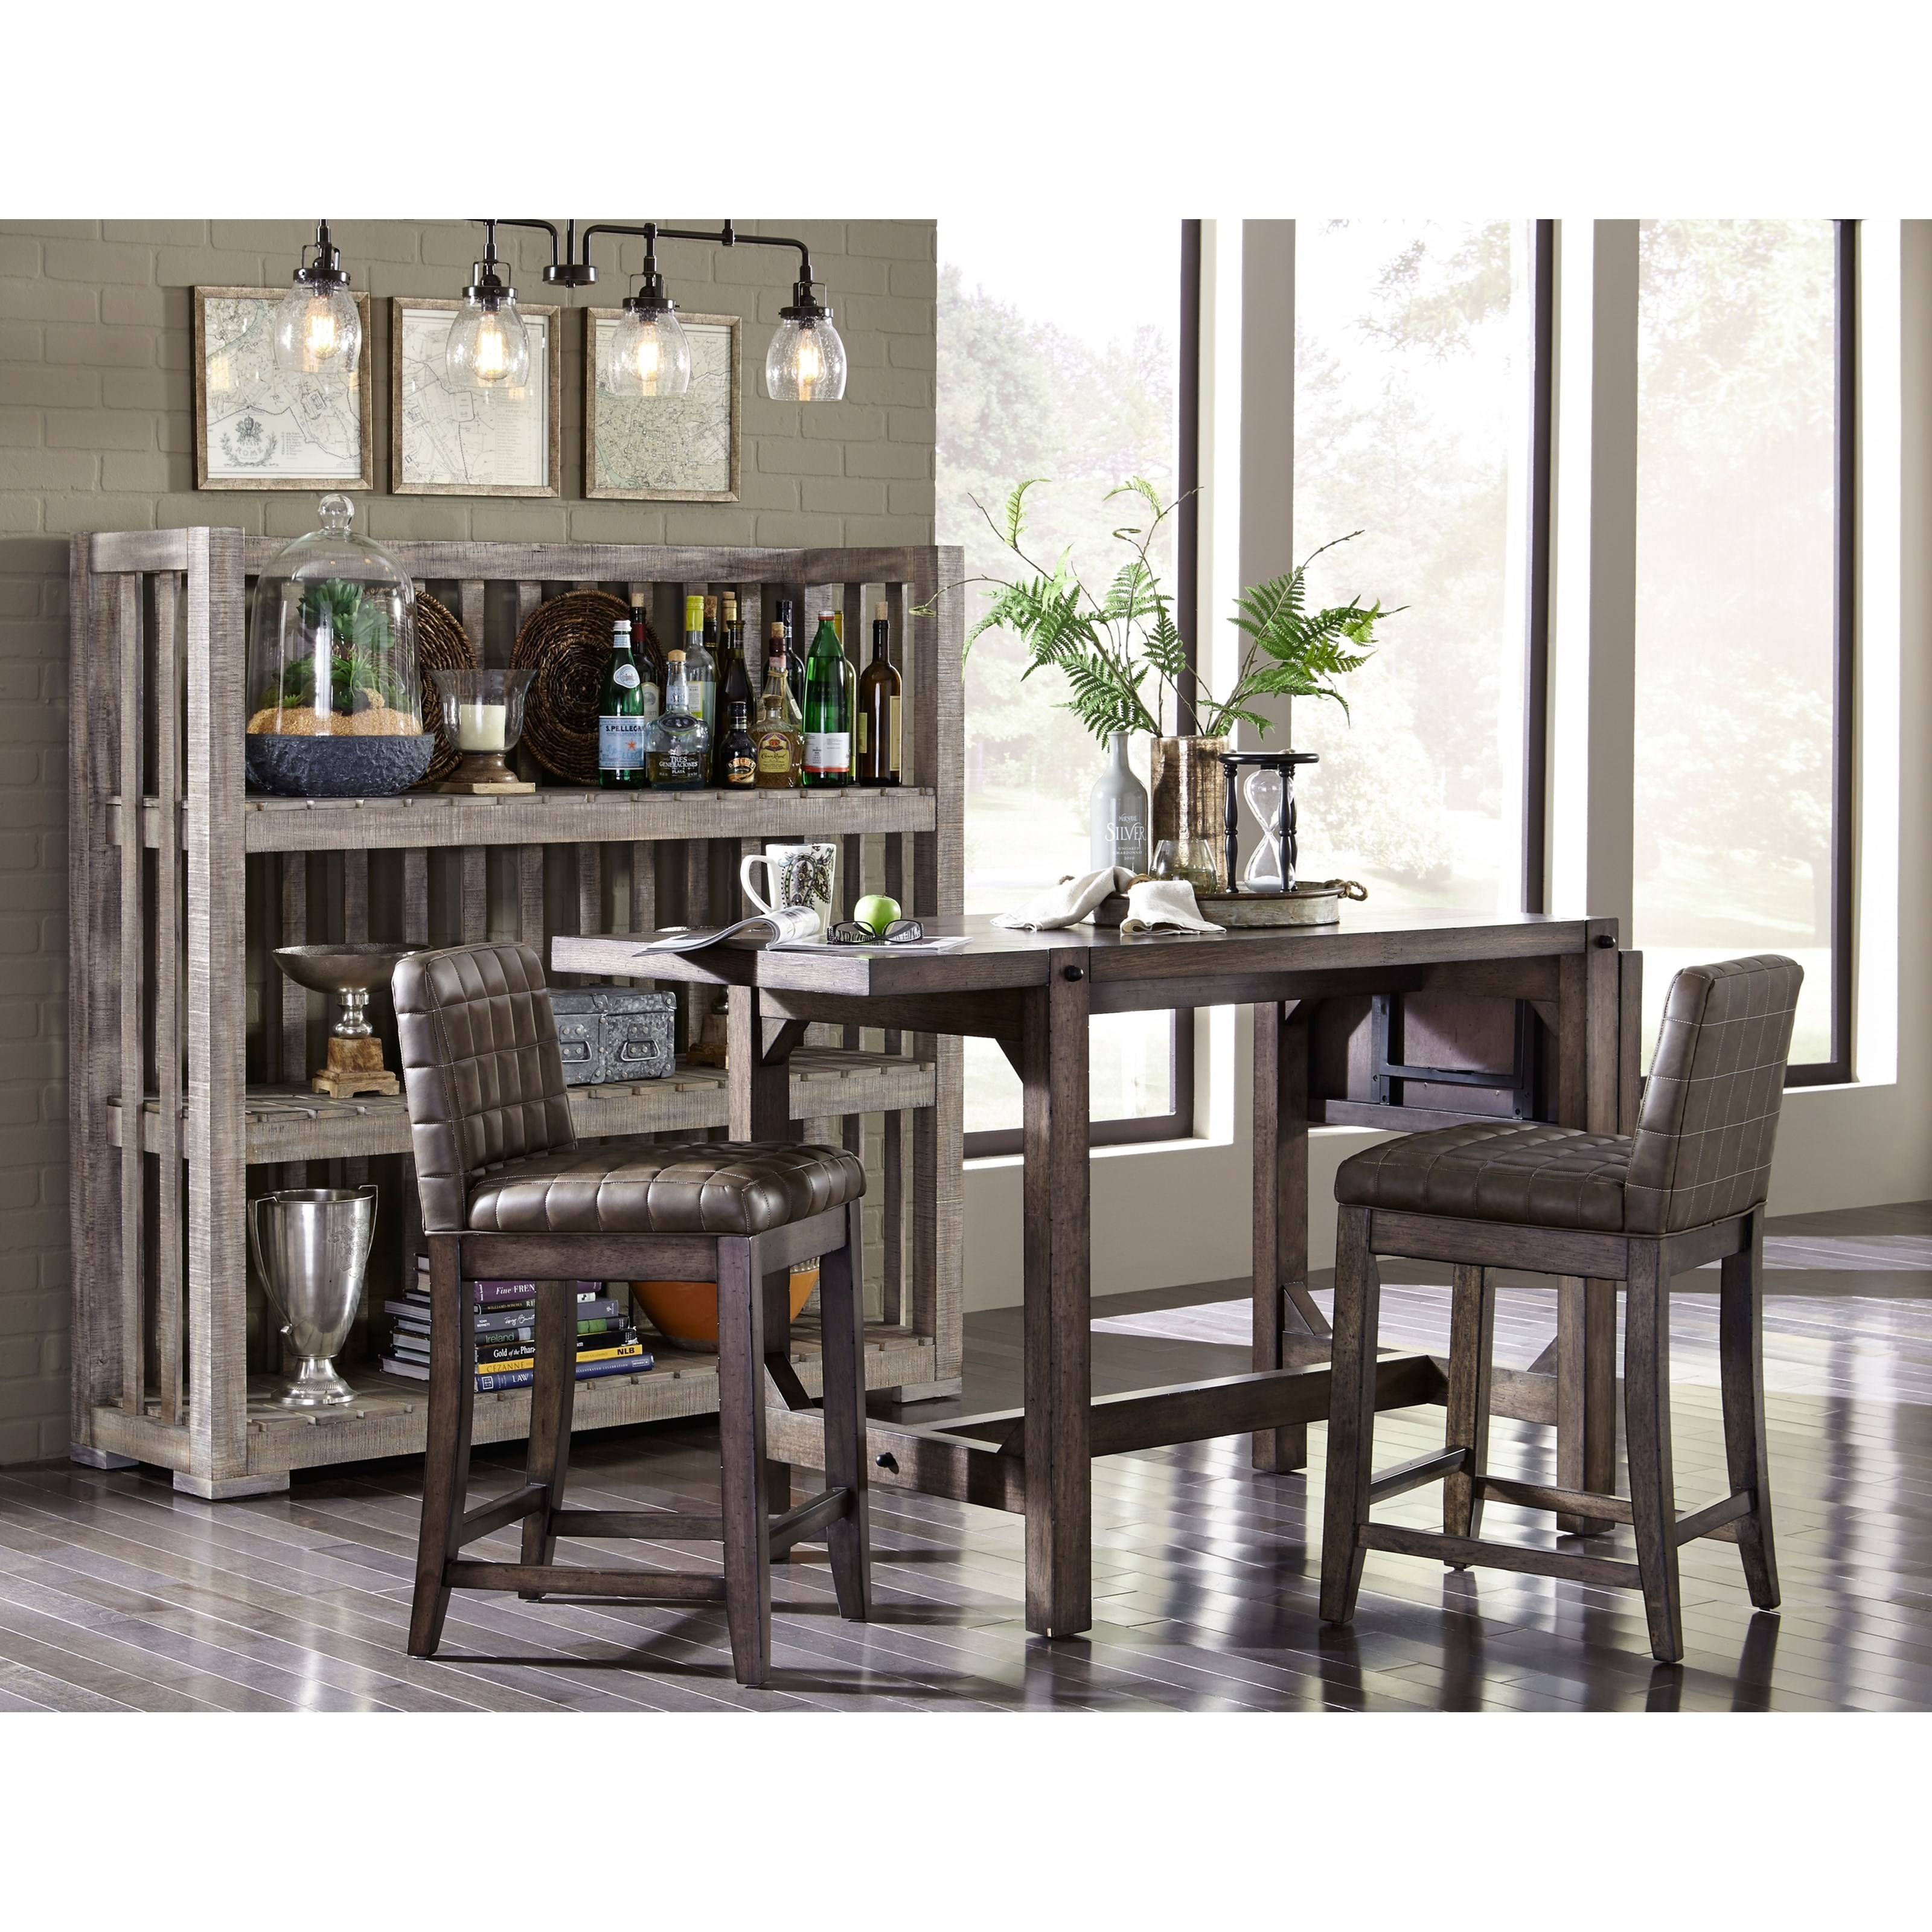 Broyhill Furniture Bedford Avenue Casual Dining Room Group - Item Number: 8615 Dining Room Group 2